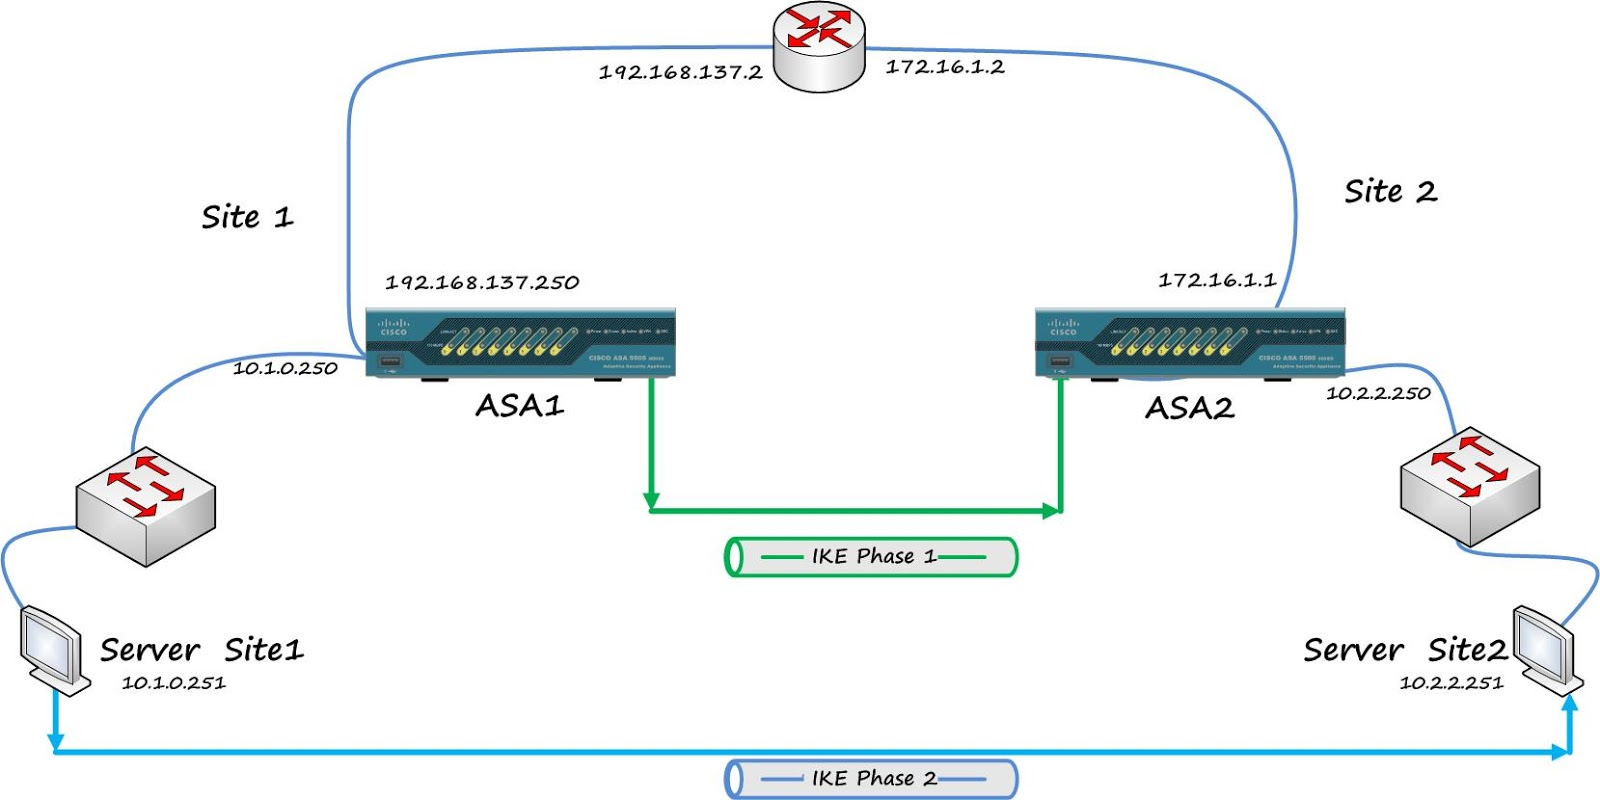 Integrate cisco asa 84 image in gns3 140 subrun jamil regarding ipsec vpn basic brief mentioned in the site to site to vpn blog using router part pooptronica Gallery